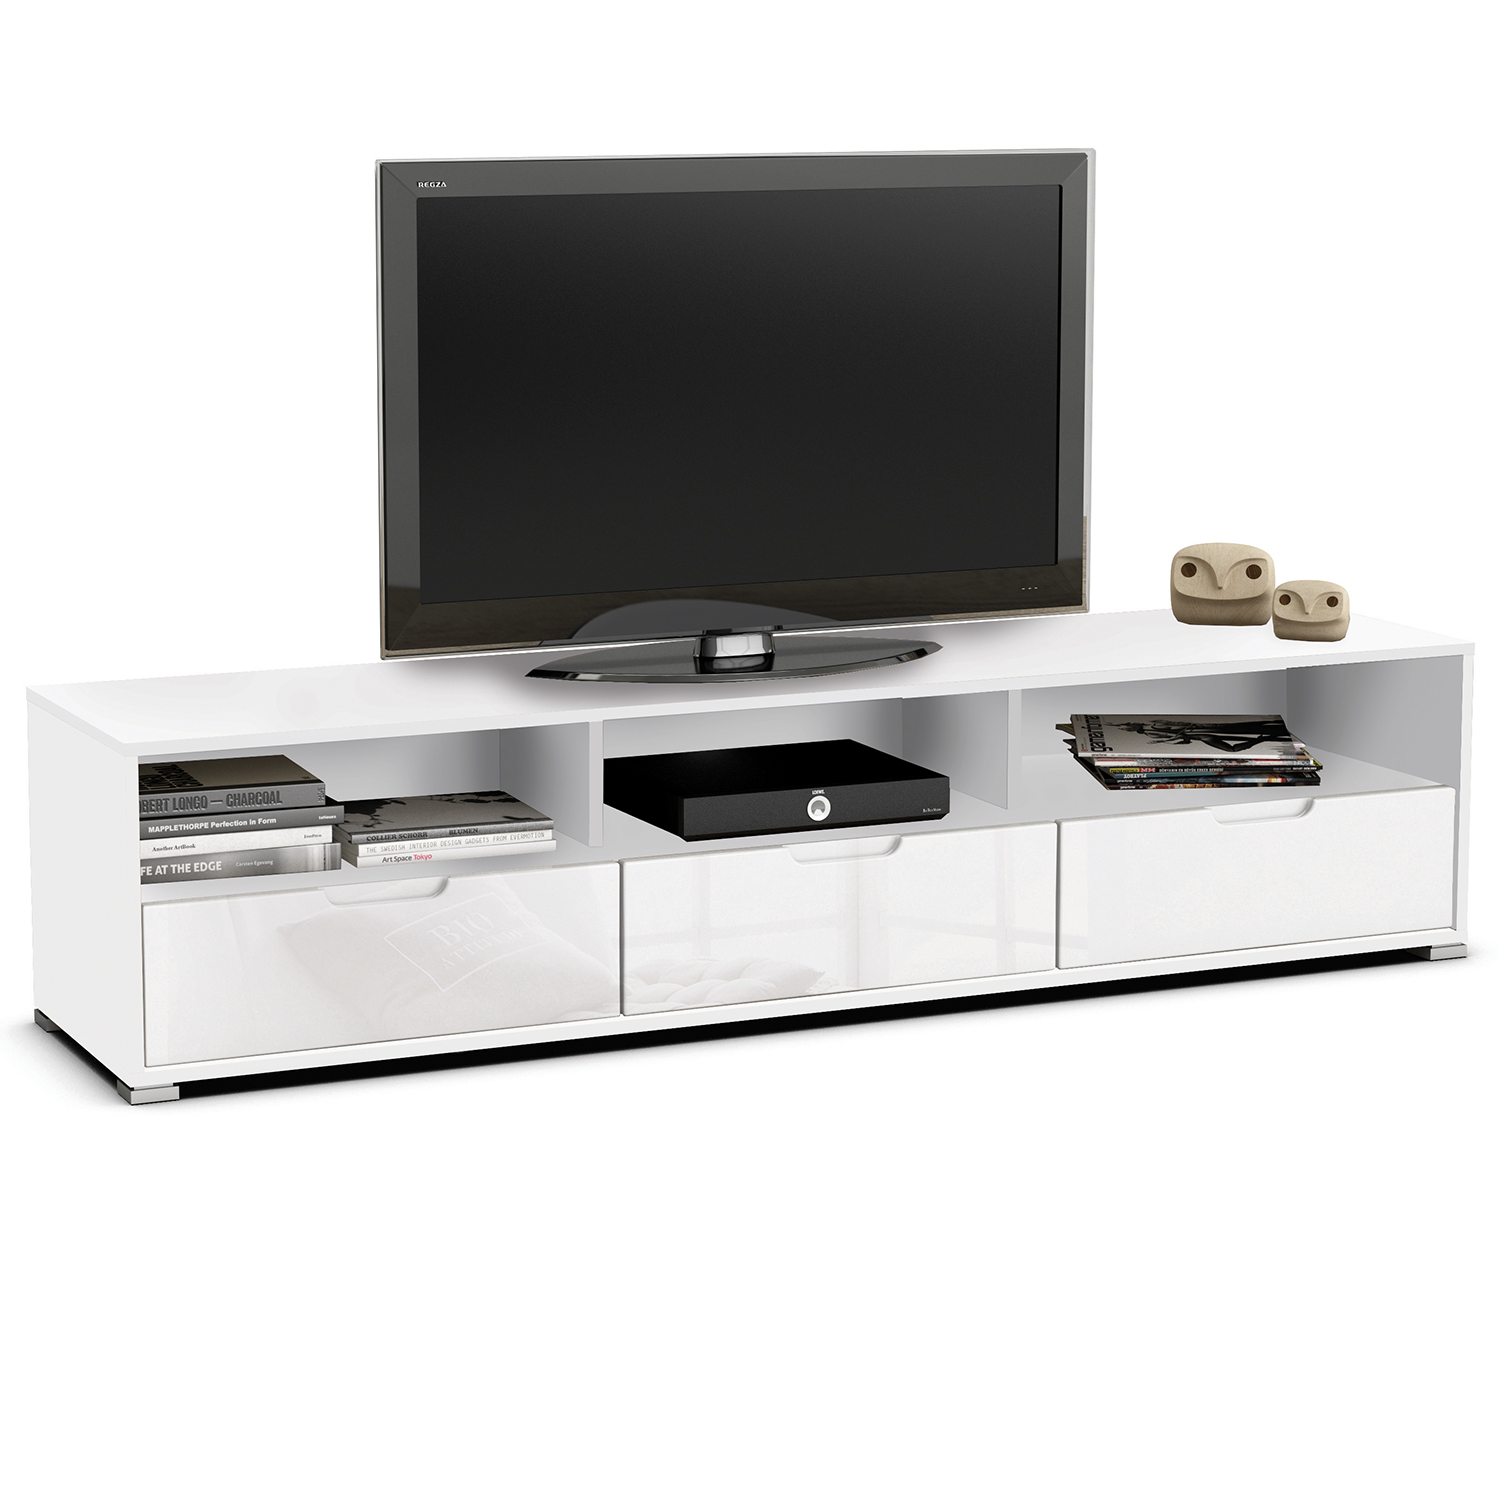 wohnwand fernsehtisch wei hochglanz tv schrank hifi regal lowboard media m bel ebay. Black Bedroom Furniture Sets. Home Design Ideas